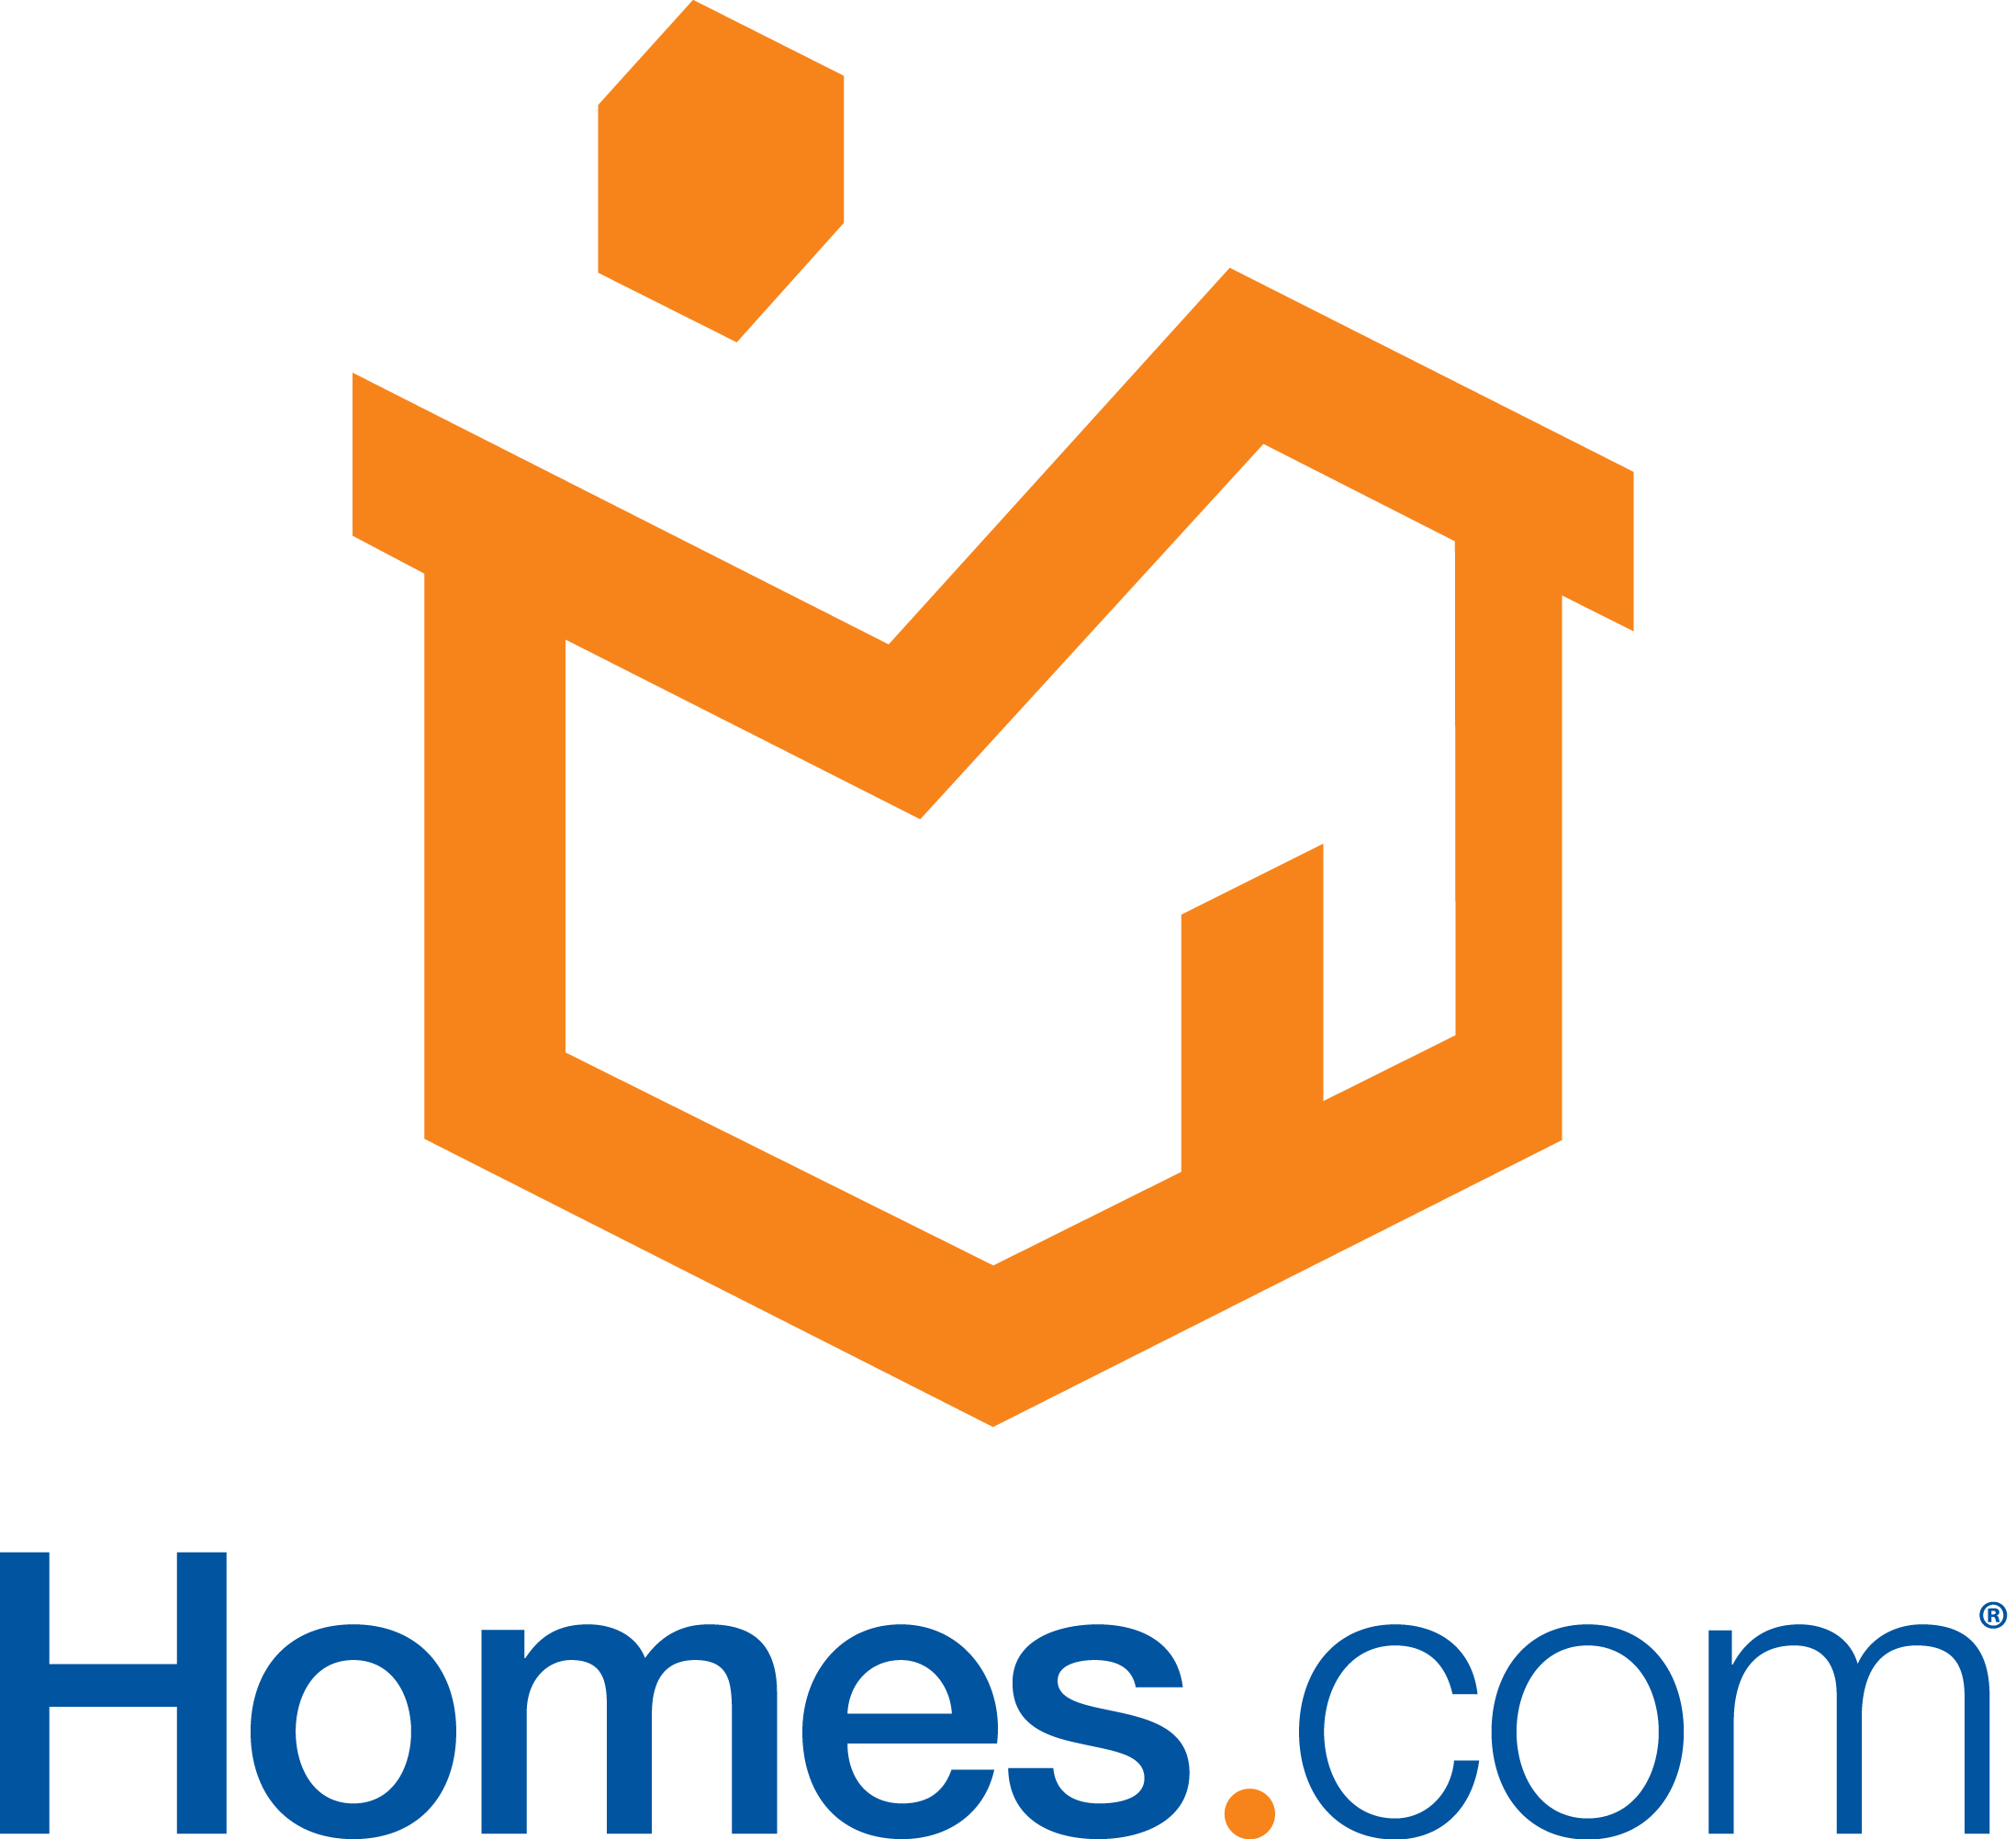 Homes.com | A place to dream, discover & decorate your home.